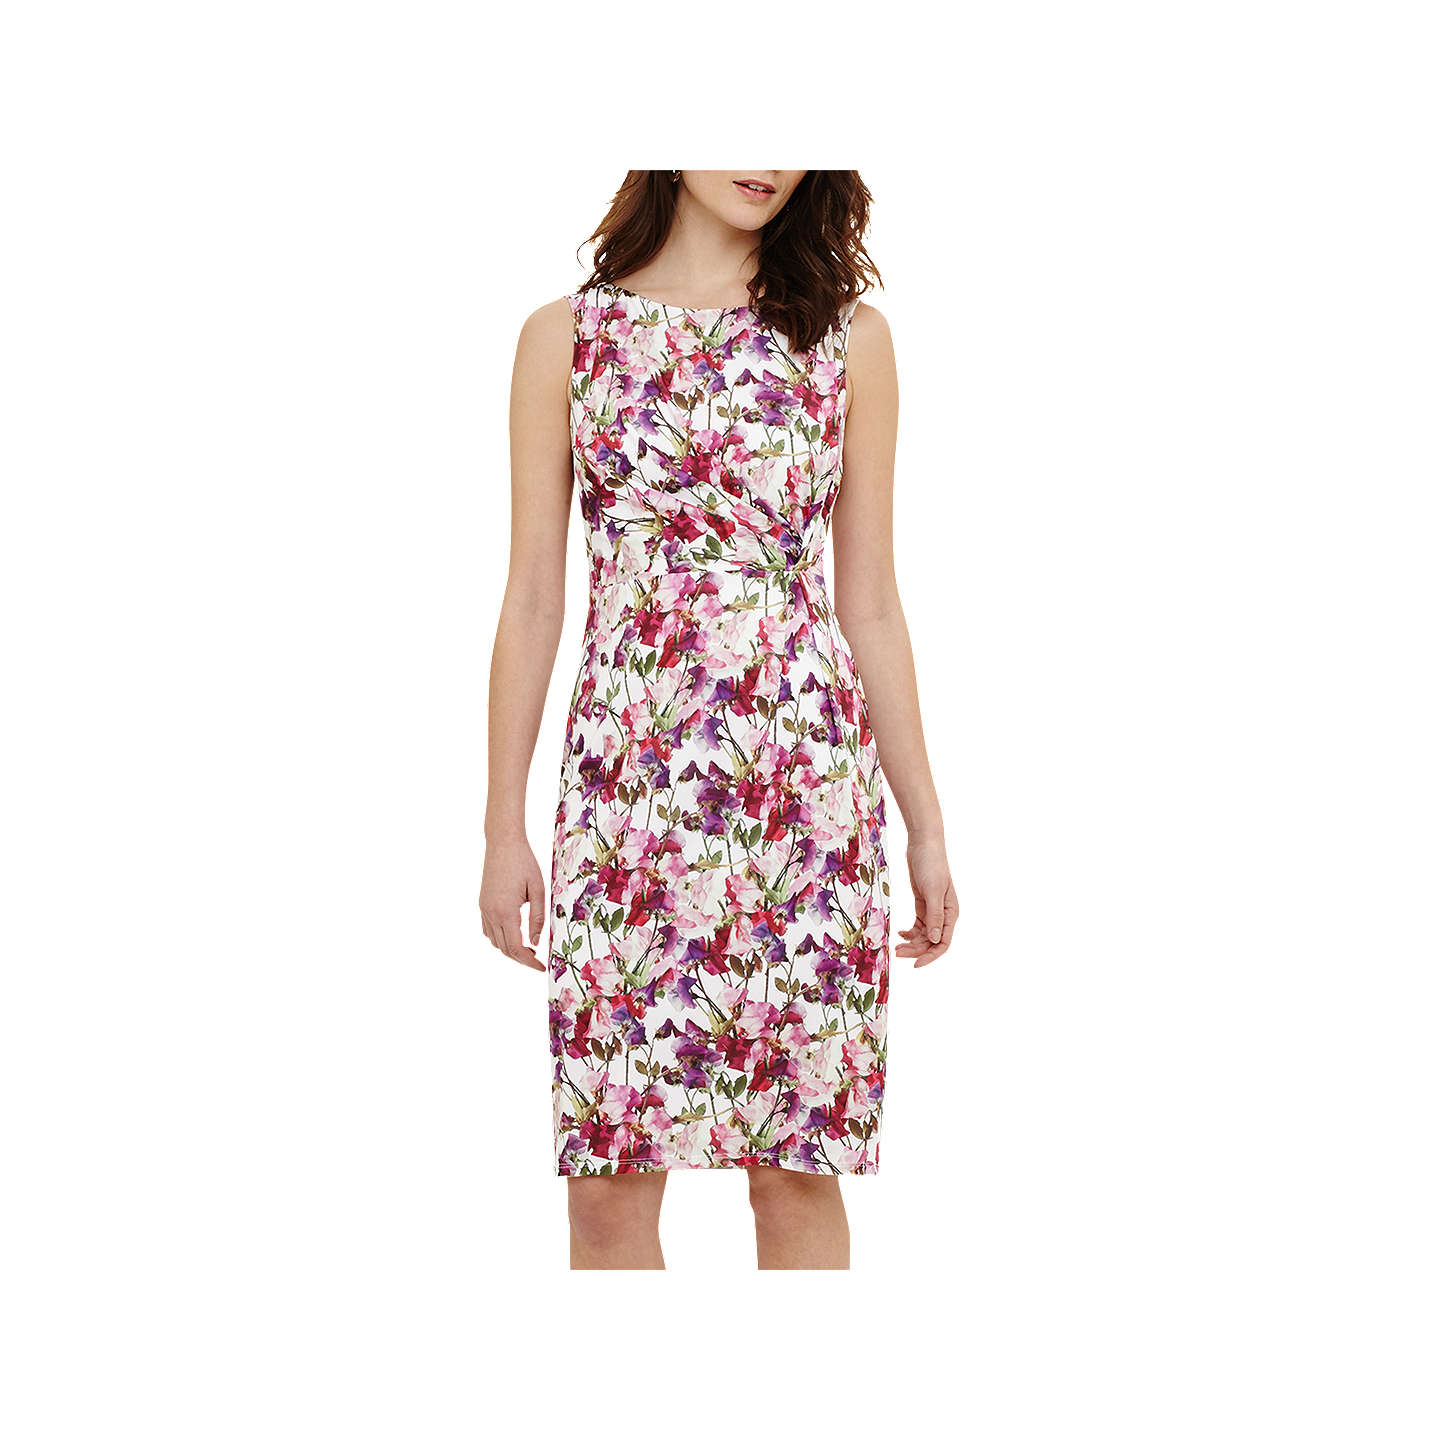 Phase Eight Sweet Pea Jersey Dress Pink Multi 6 Online At Johnlewis